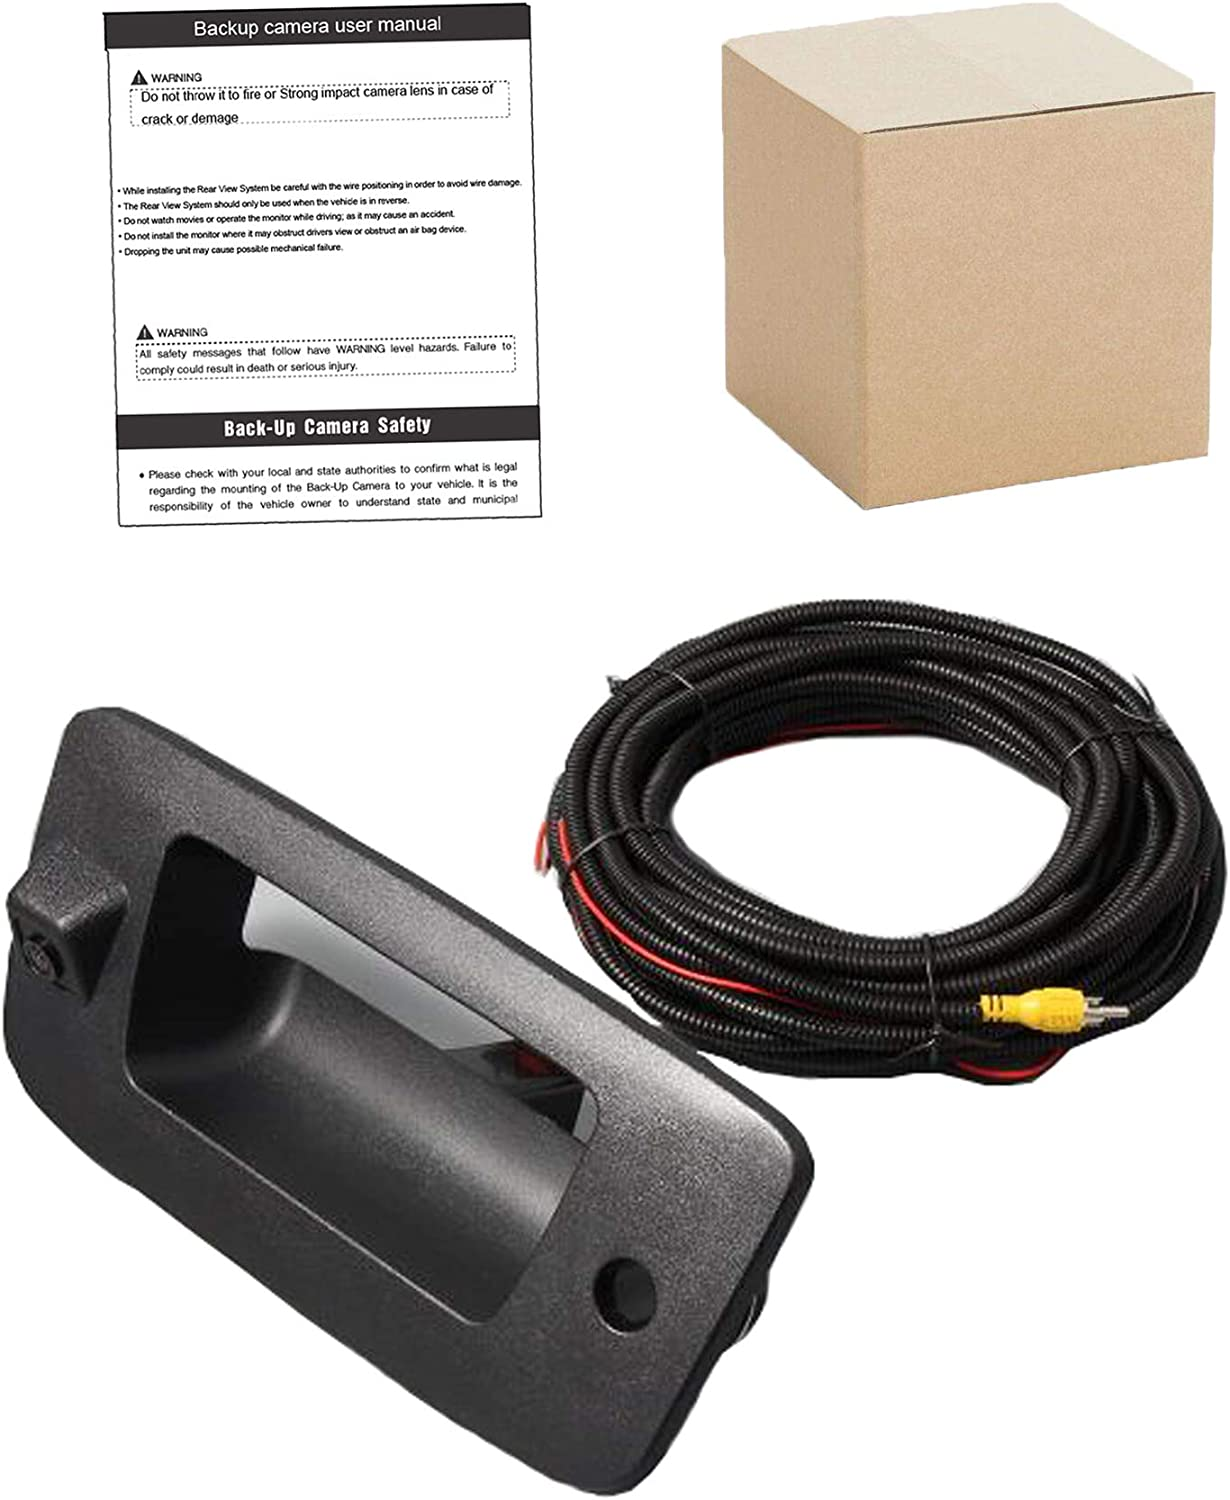 Red Wolf Tailgate Handle With Backup Camera Removable Guideline ...